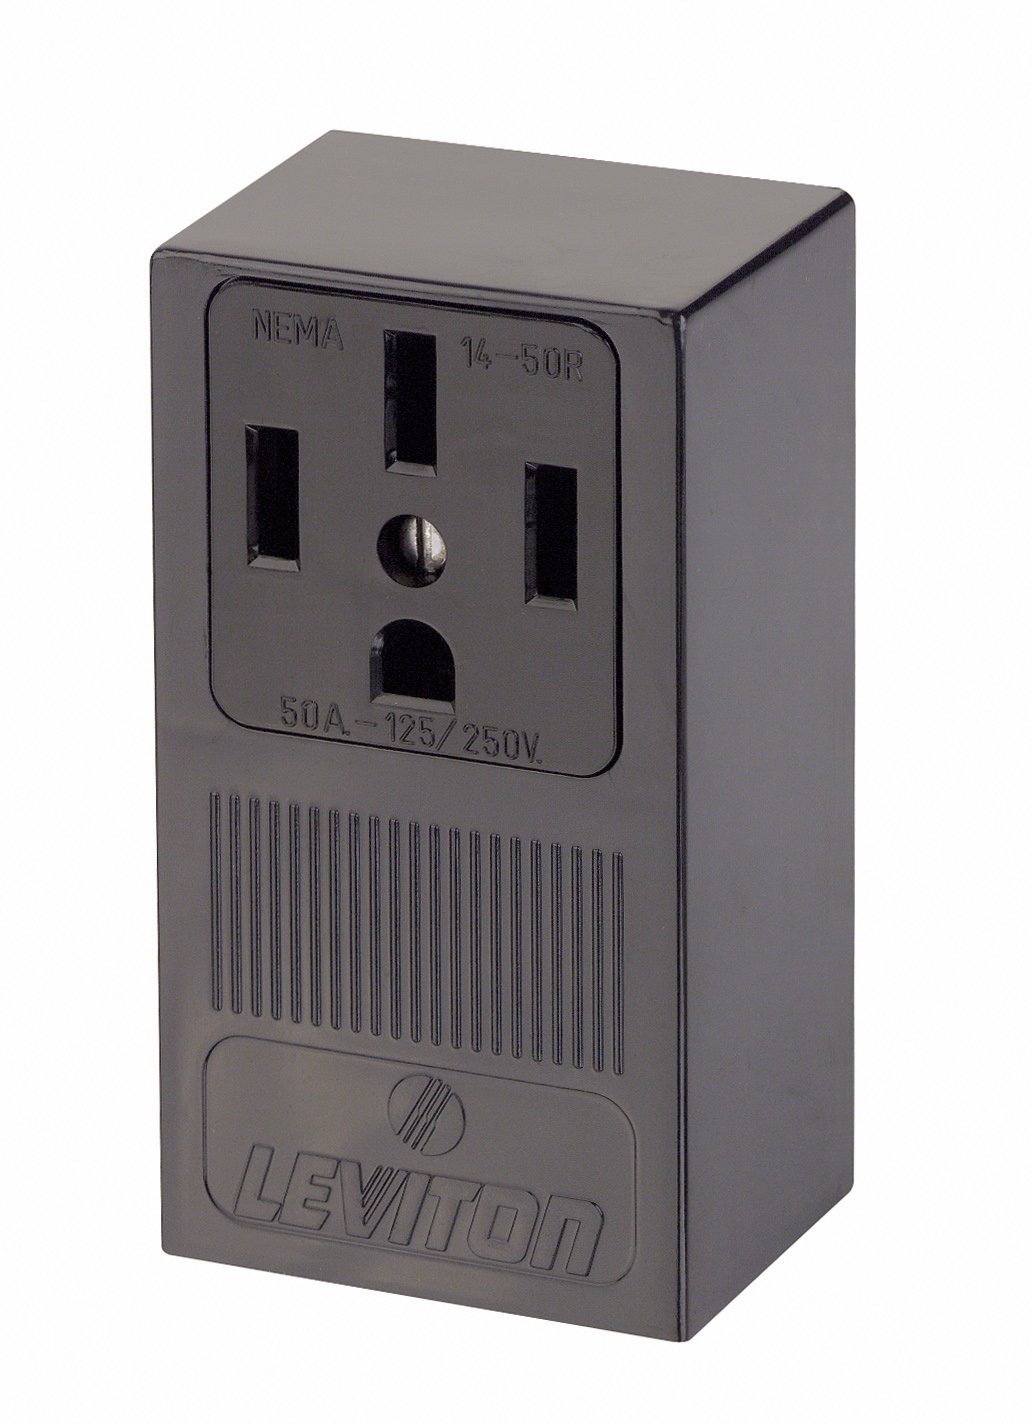 Safely Use Extension Cords When Charging An Electric Car Or Rated Electrical Box Designed To Be Used With A Range Receptacle Leviton 55050 50 Amp 125 250 Volt Nema 14 50r 3p 4w Surface Mounting Straight Blade Industrial Grade Grounding Side Wired Steel Strap